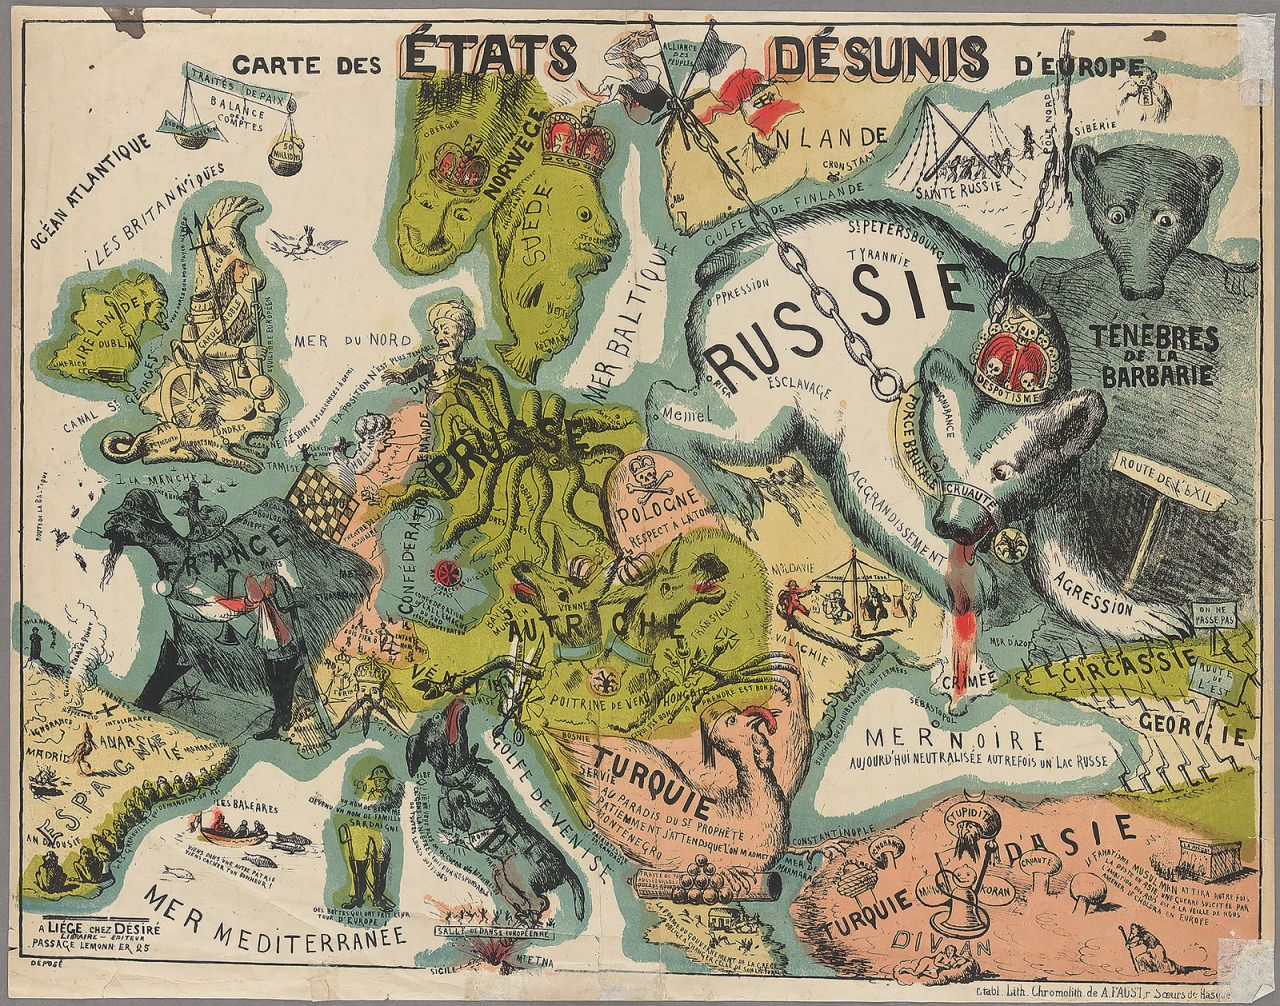 Map of the Disunited States of Europe